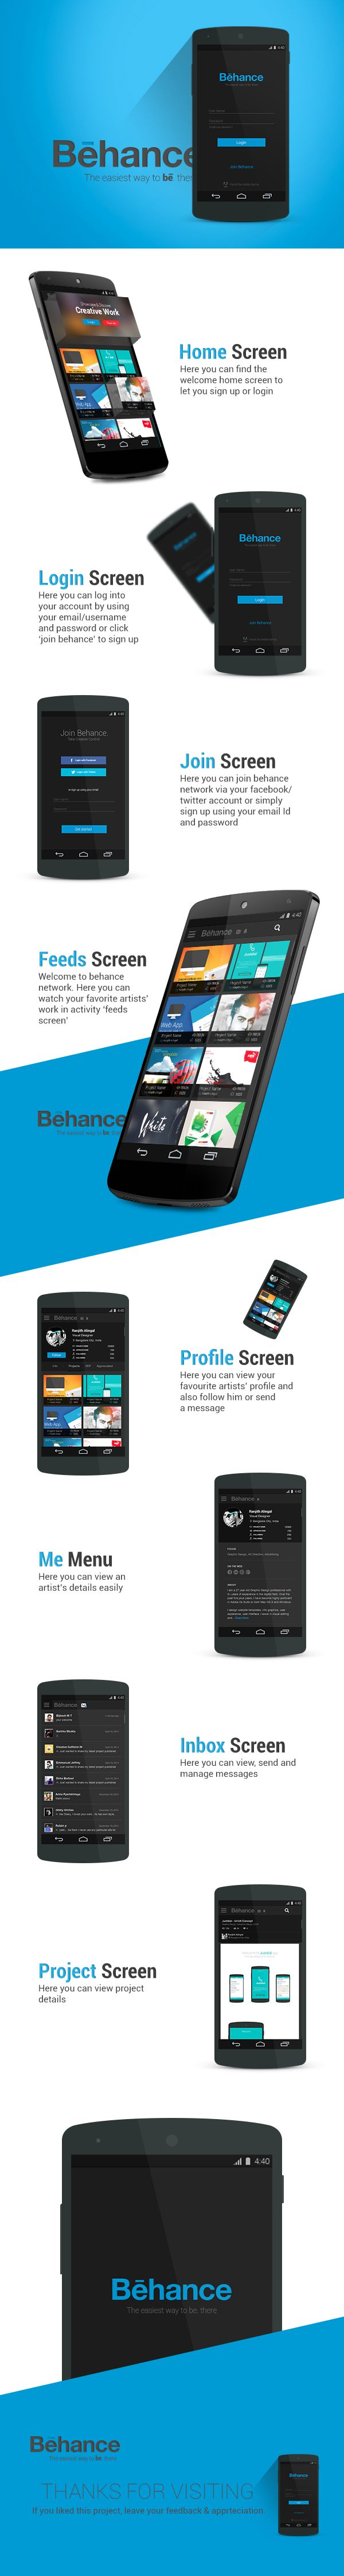 Behance Redesigned on Behance